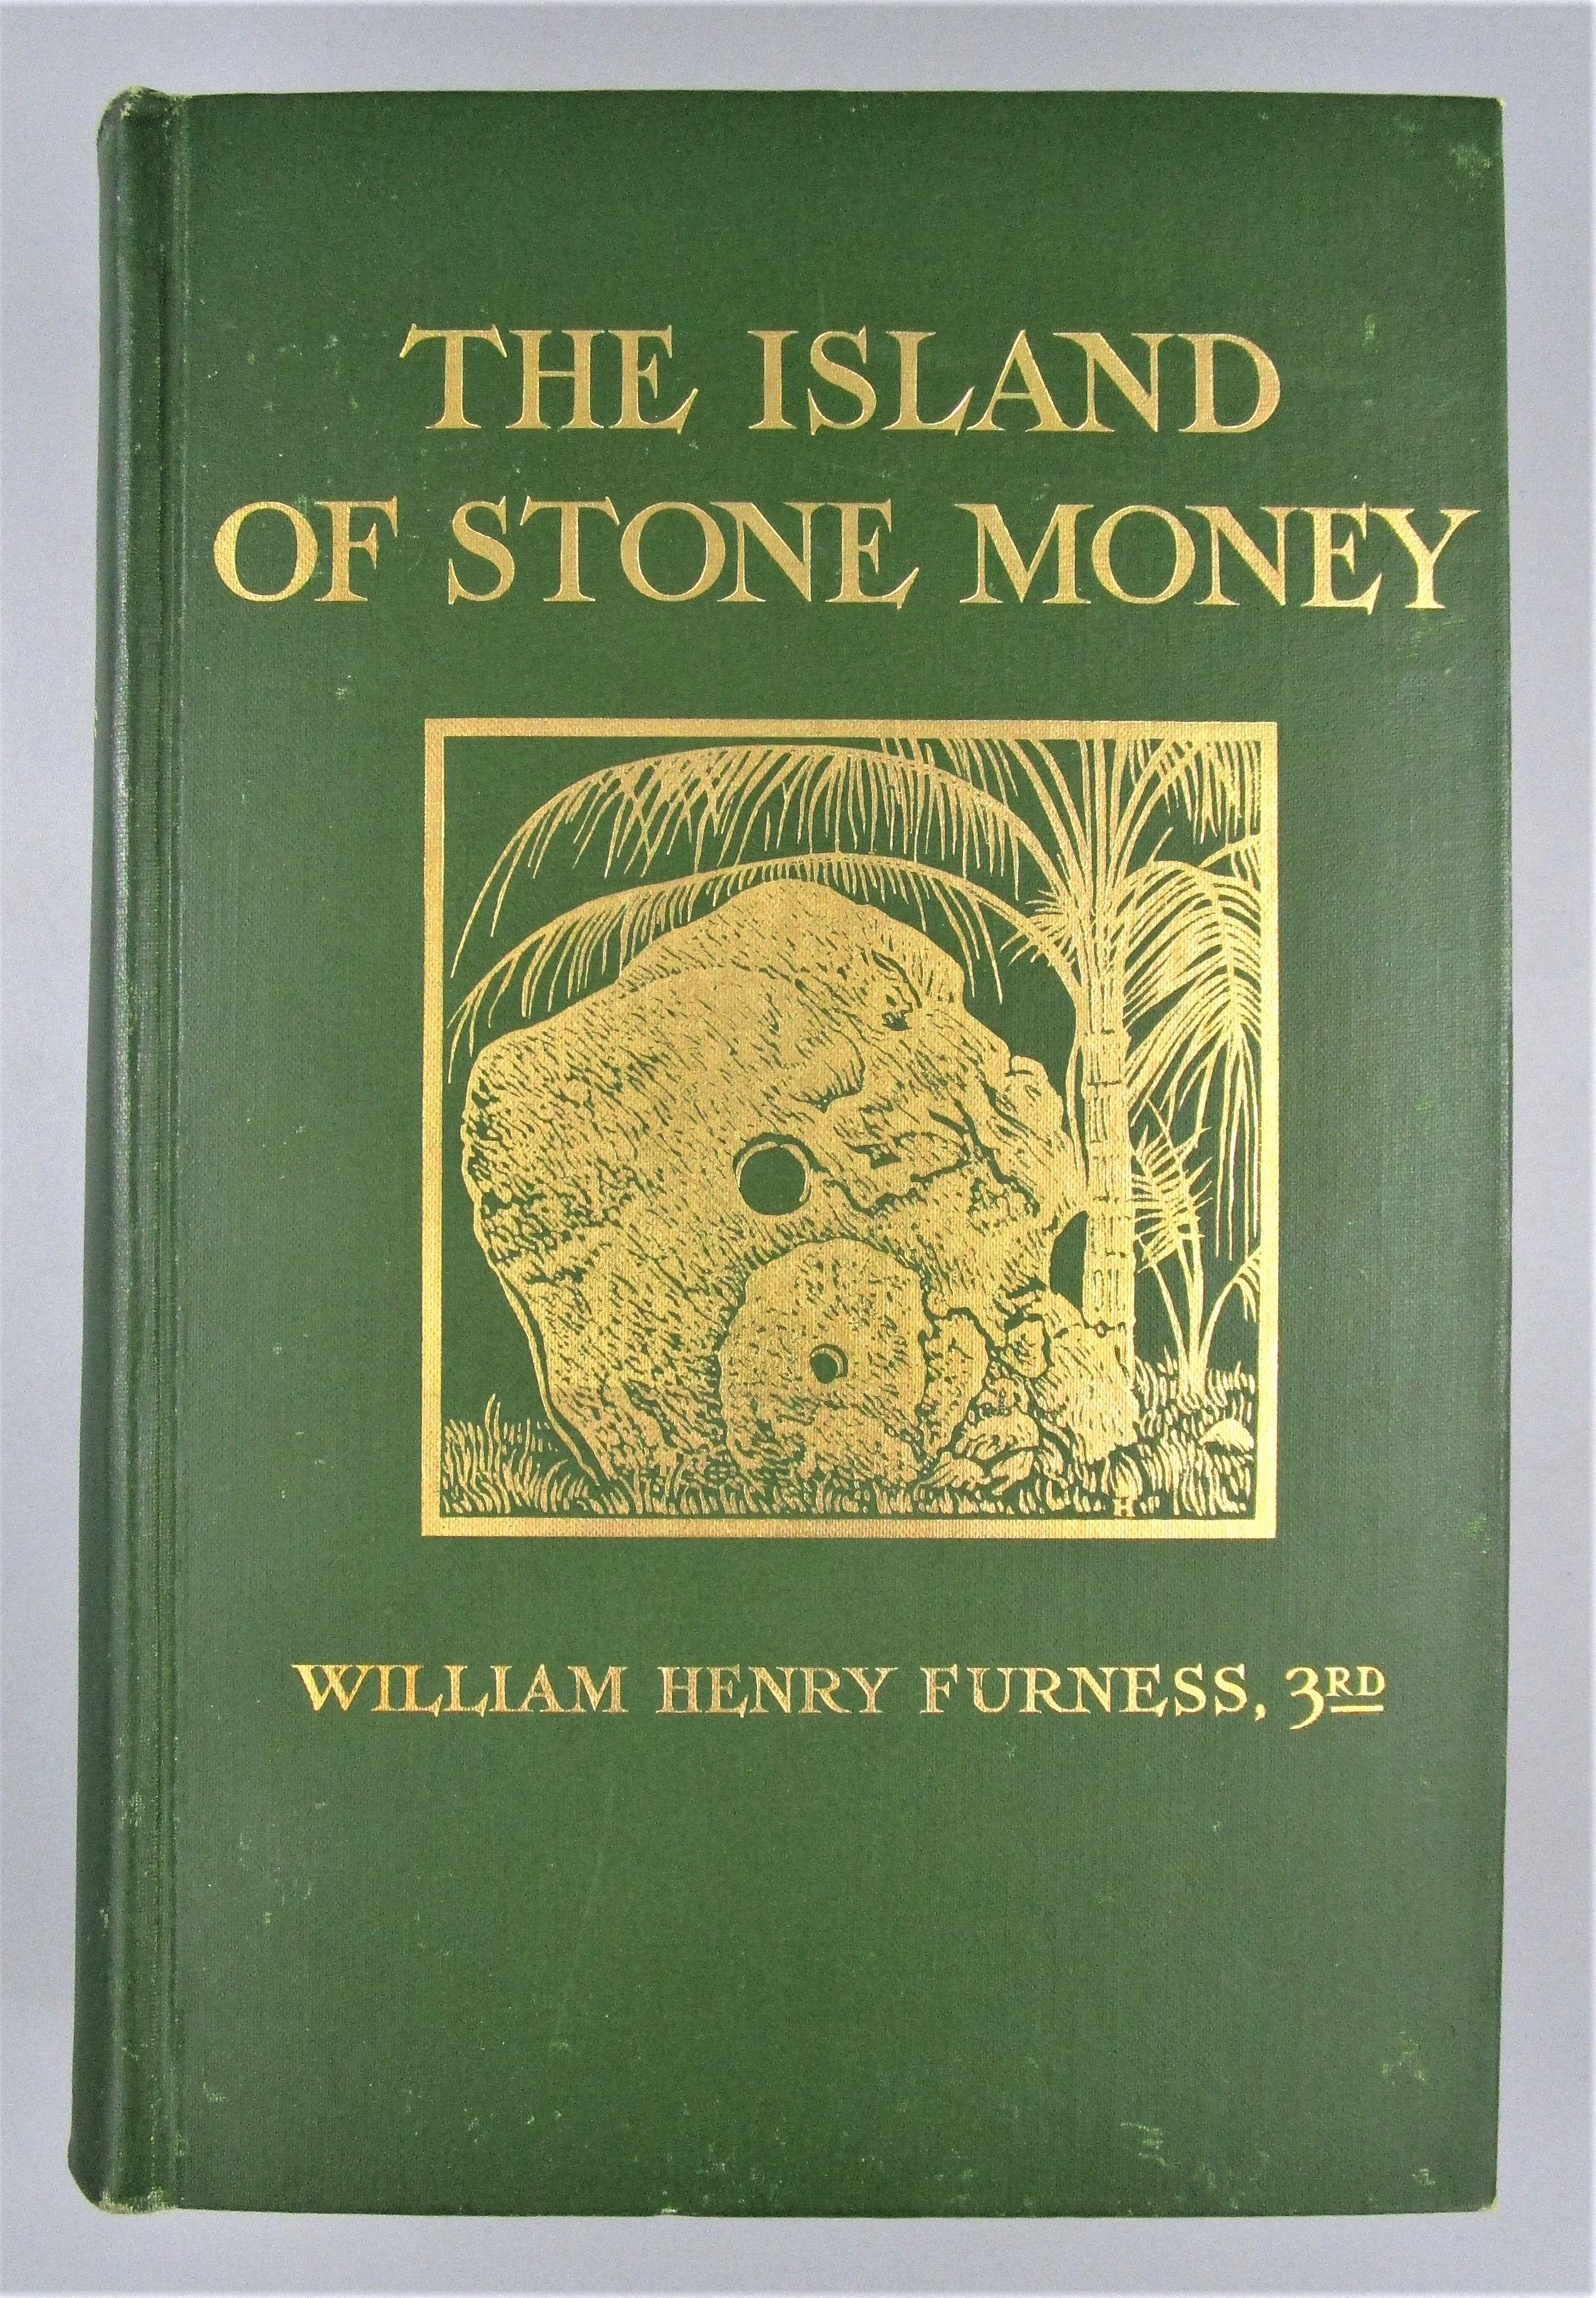 THE ISLAND OF STONE MONEY, by William Henry Furness, 3rd - 1910 [1st]